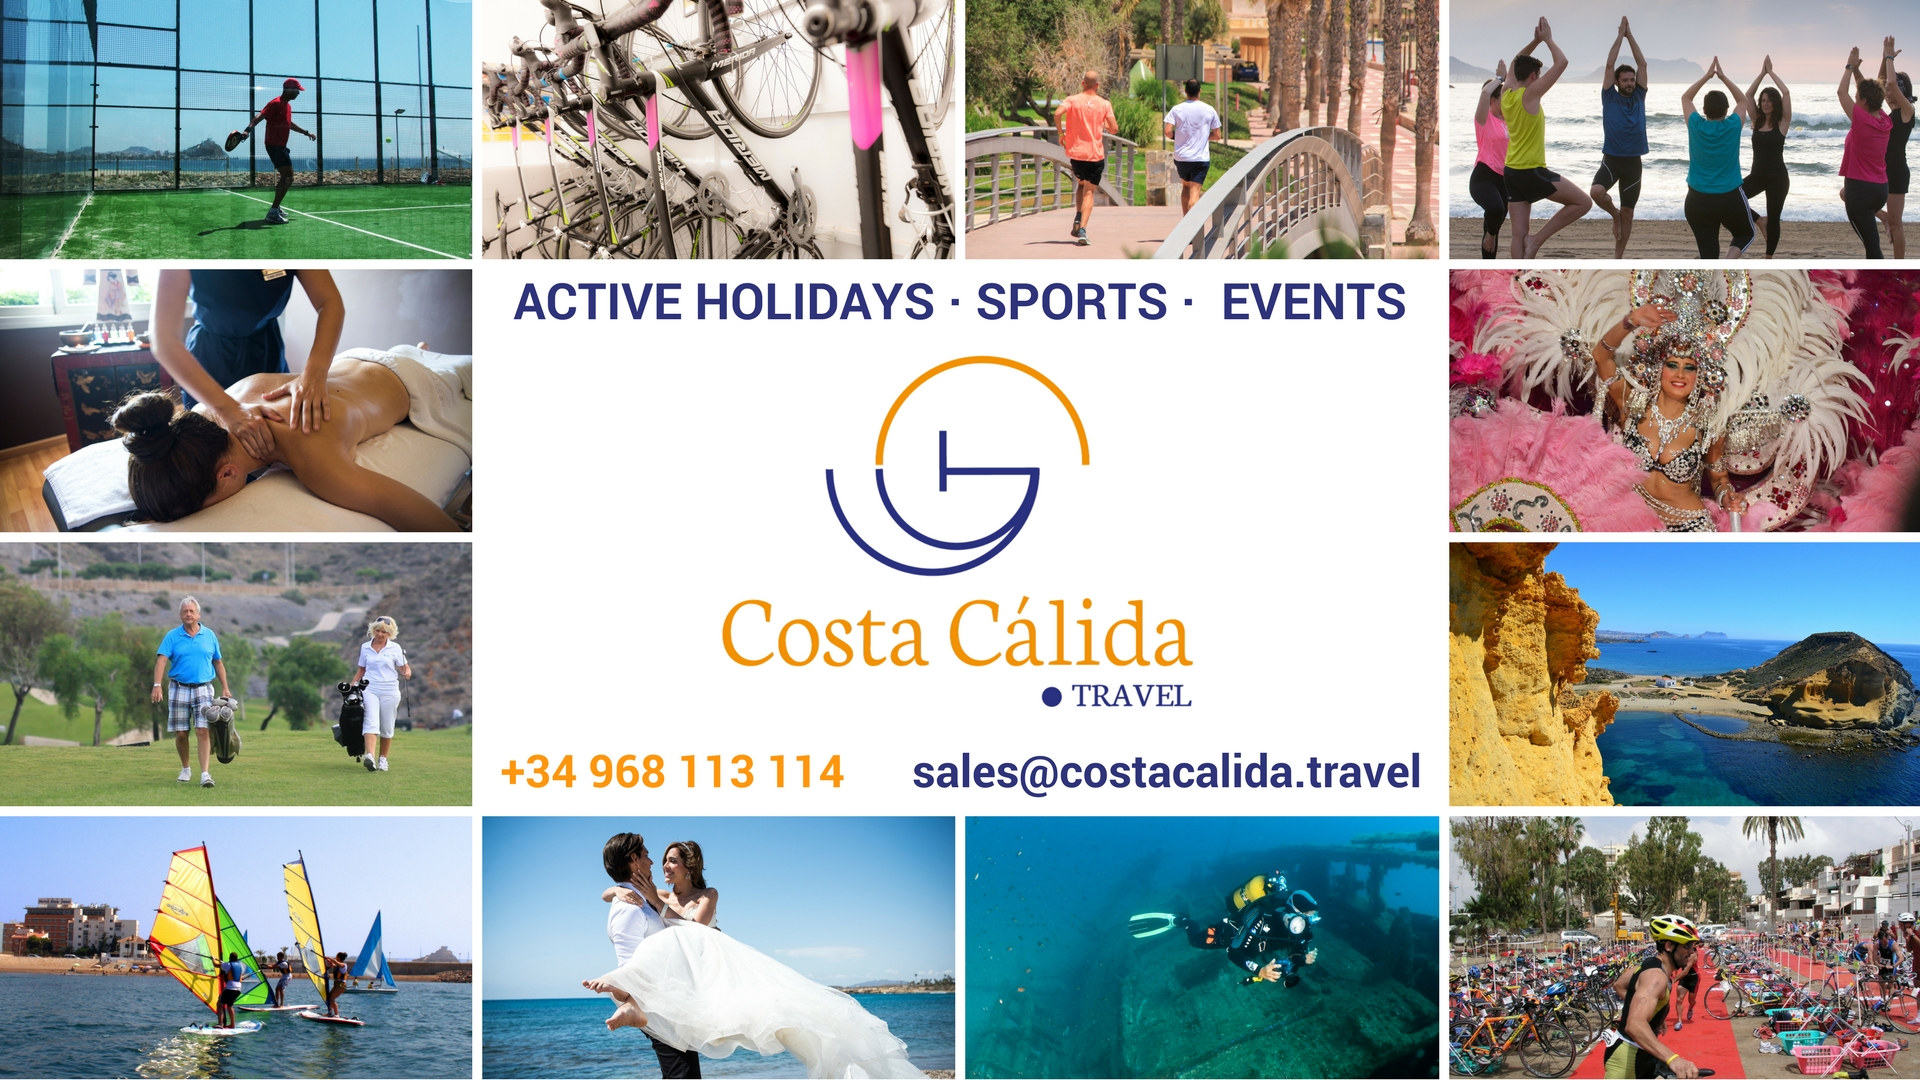 COSTA CÁLIDA .TRAVEL ACTIVE HOLIDAYS - SPORTS - EVENTS